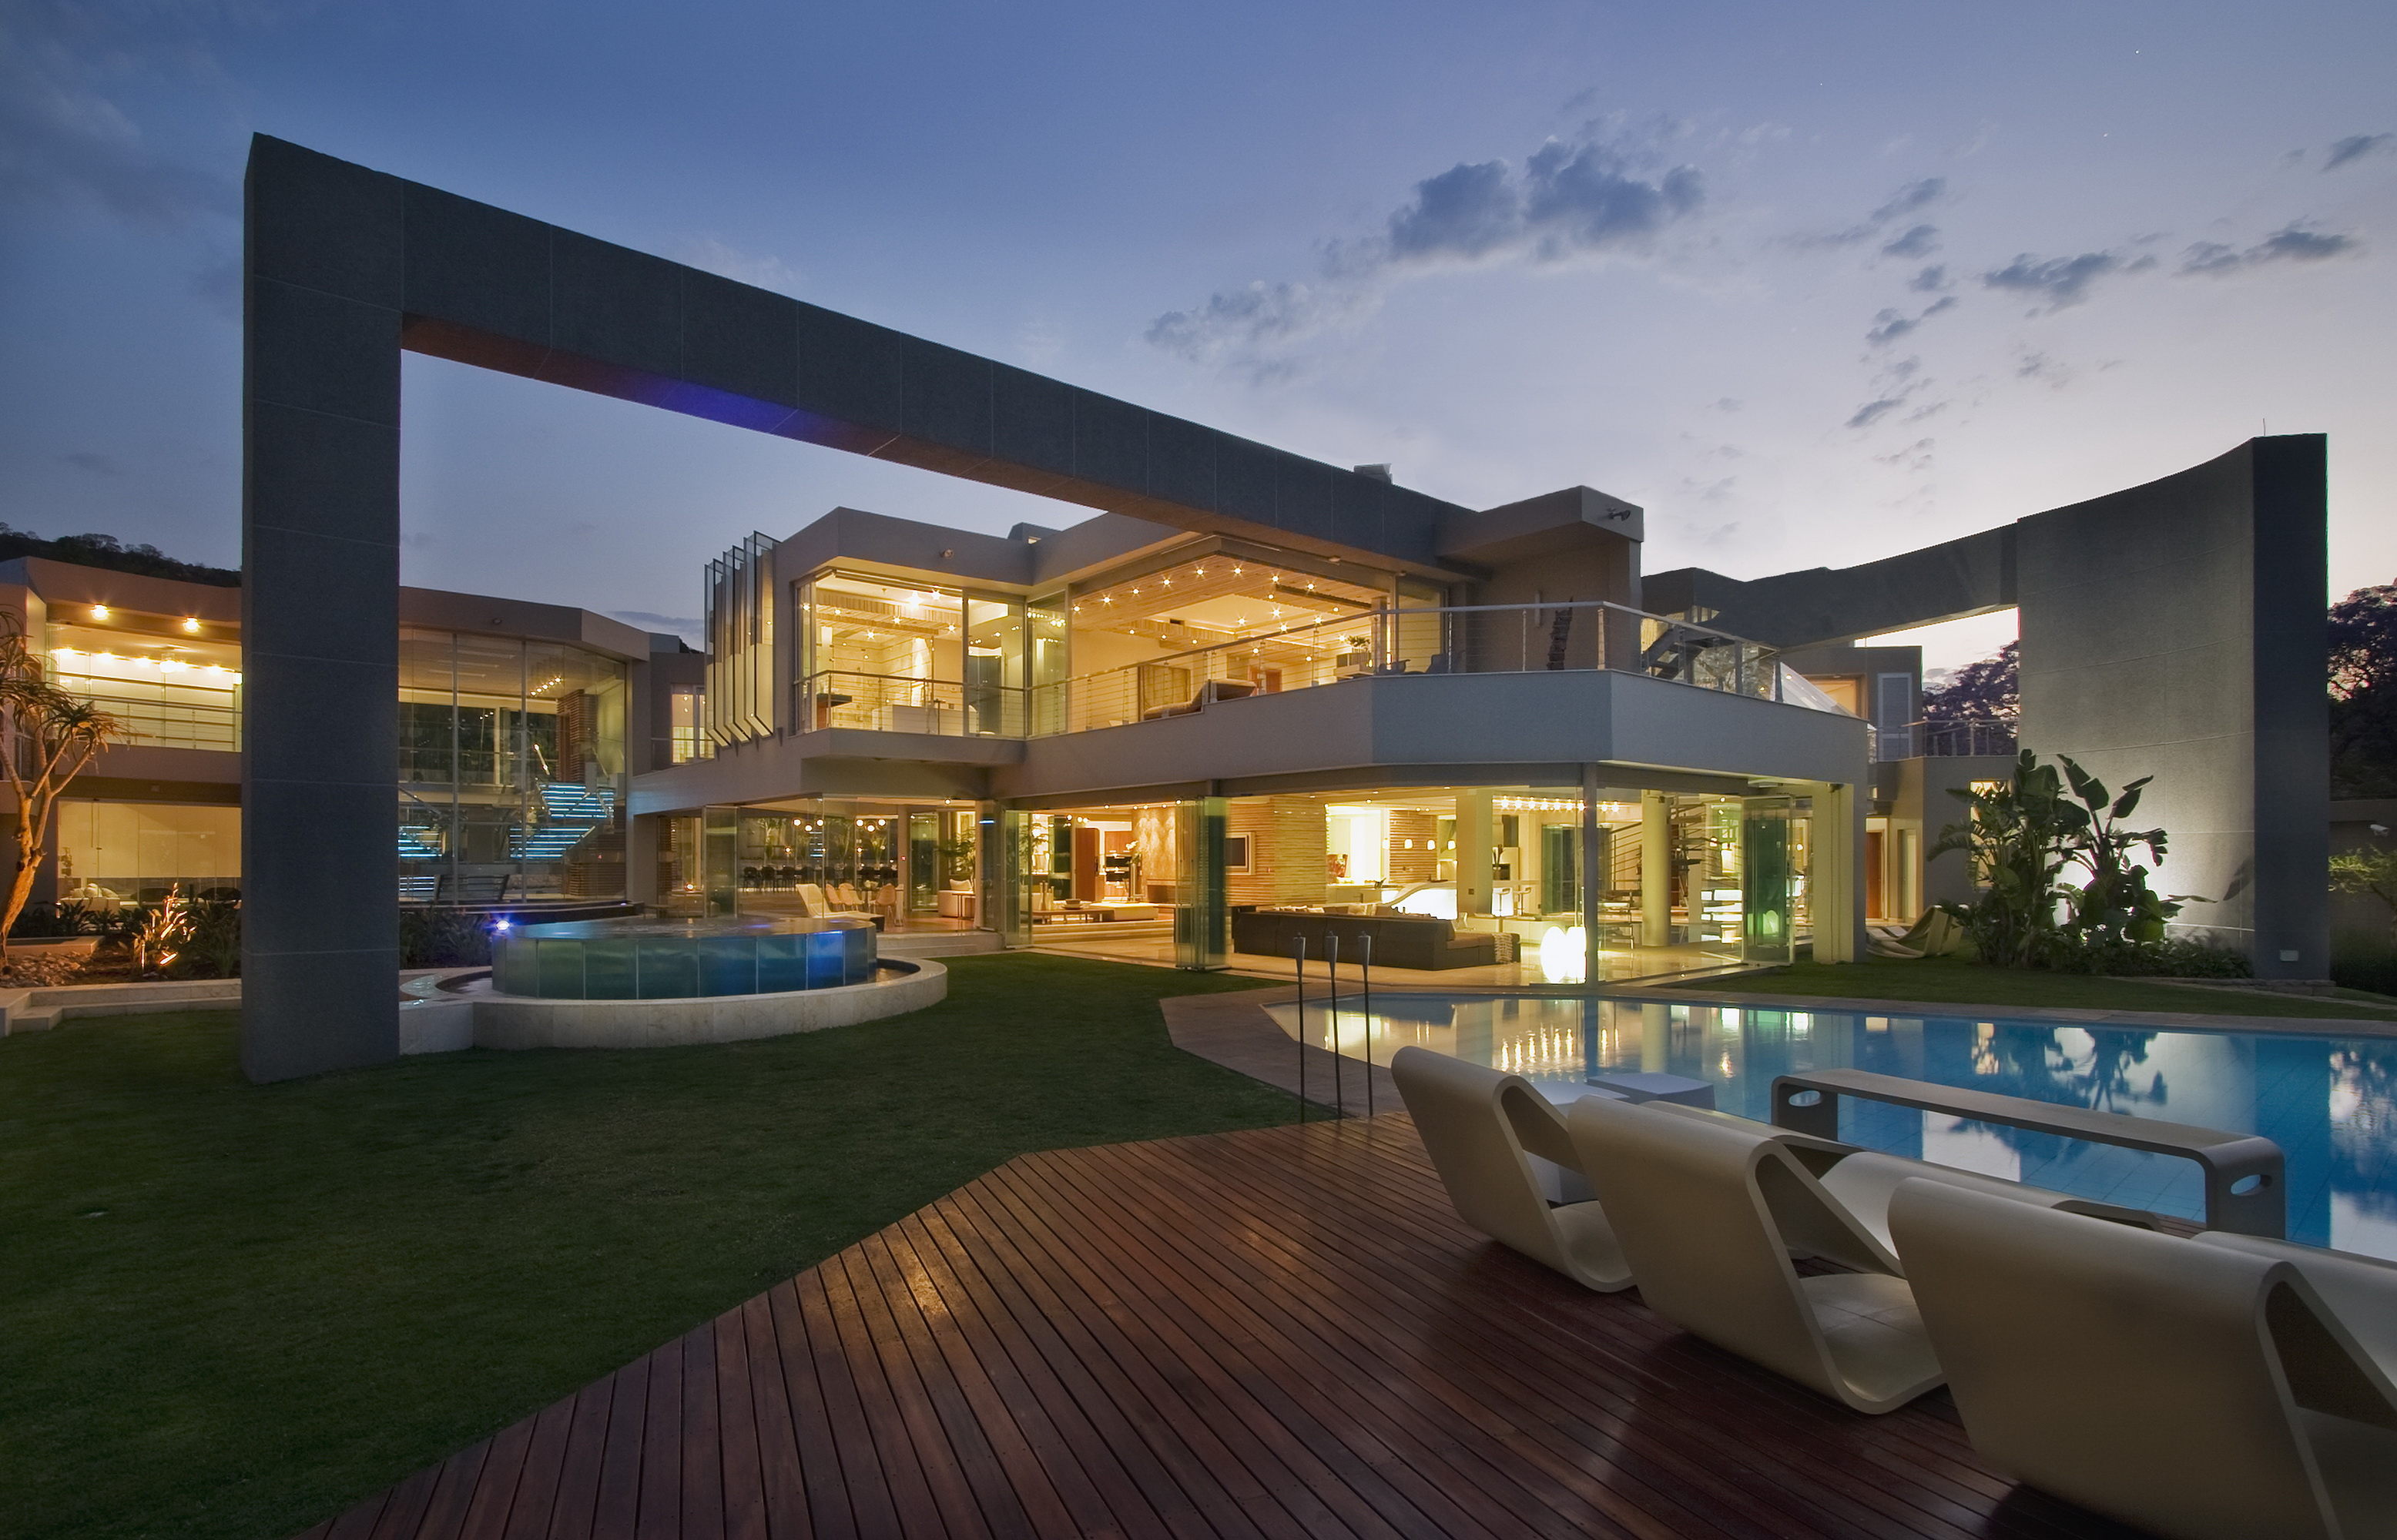 Glass House Architect Magazine Nico Van Der Meulen Architects Johannesbrg South Africa